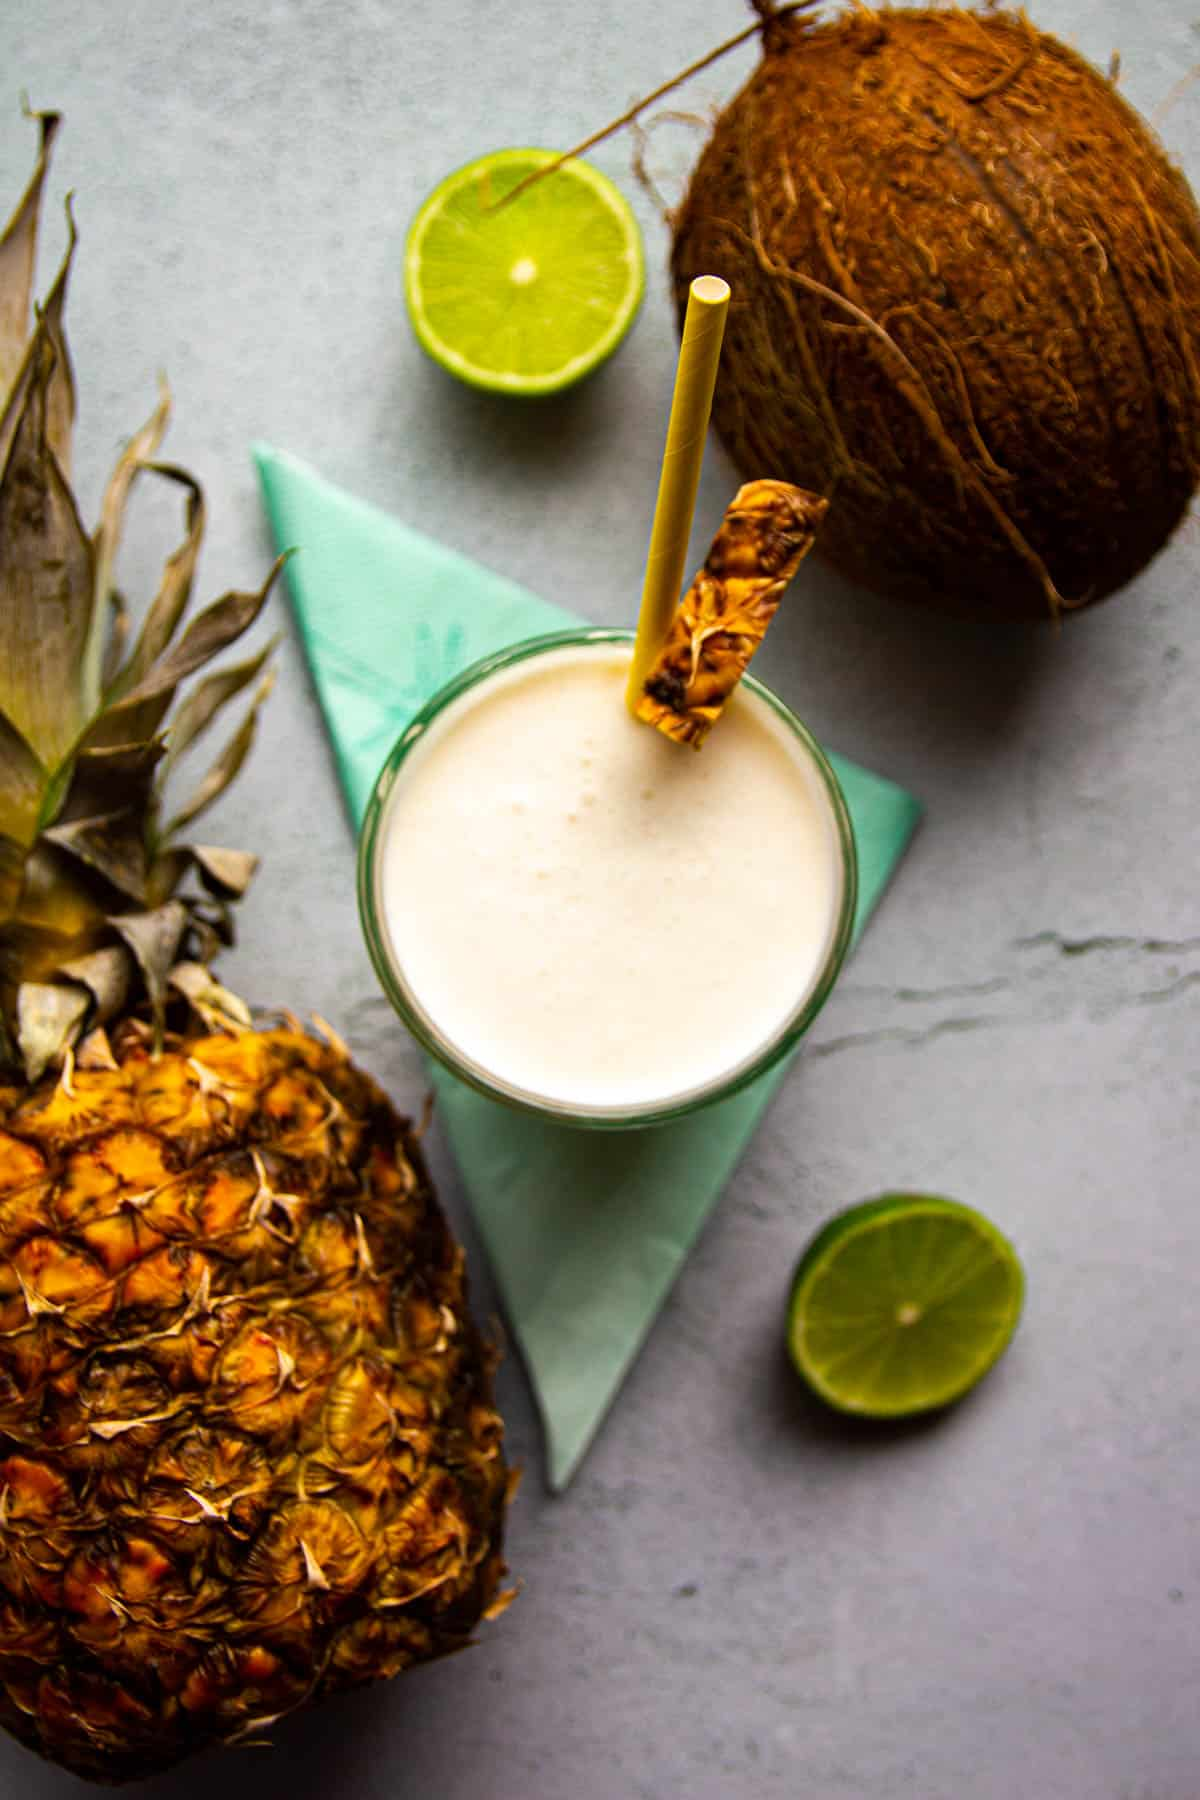 A pina colada on the table with fresh pinapple and coconut in the back.